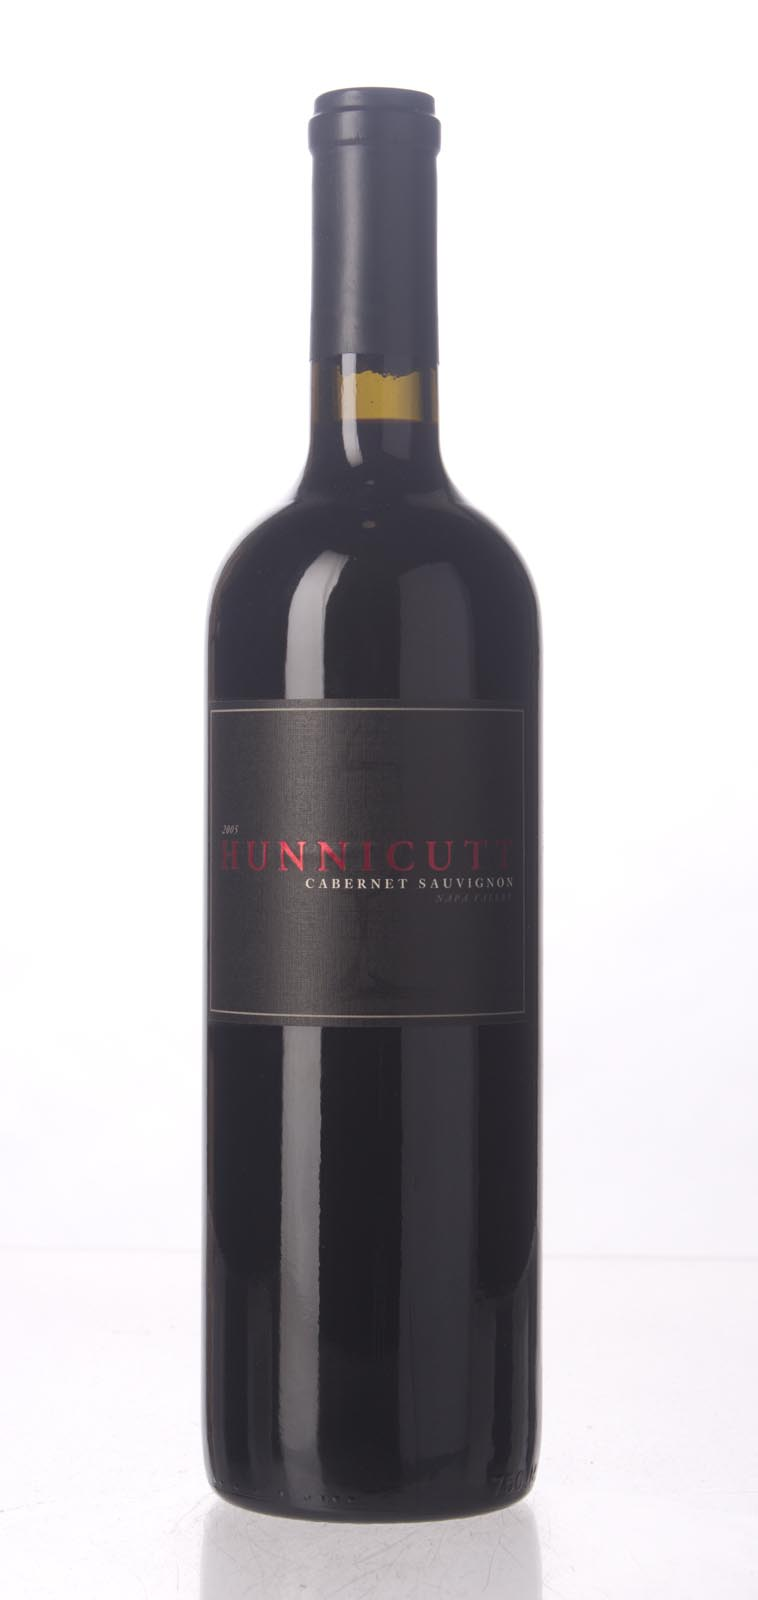 Hunnicut Cabernet Sauvignon Napa Valley 2005, 750mL () from The BPW - Merchants of rare and fine wines.